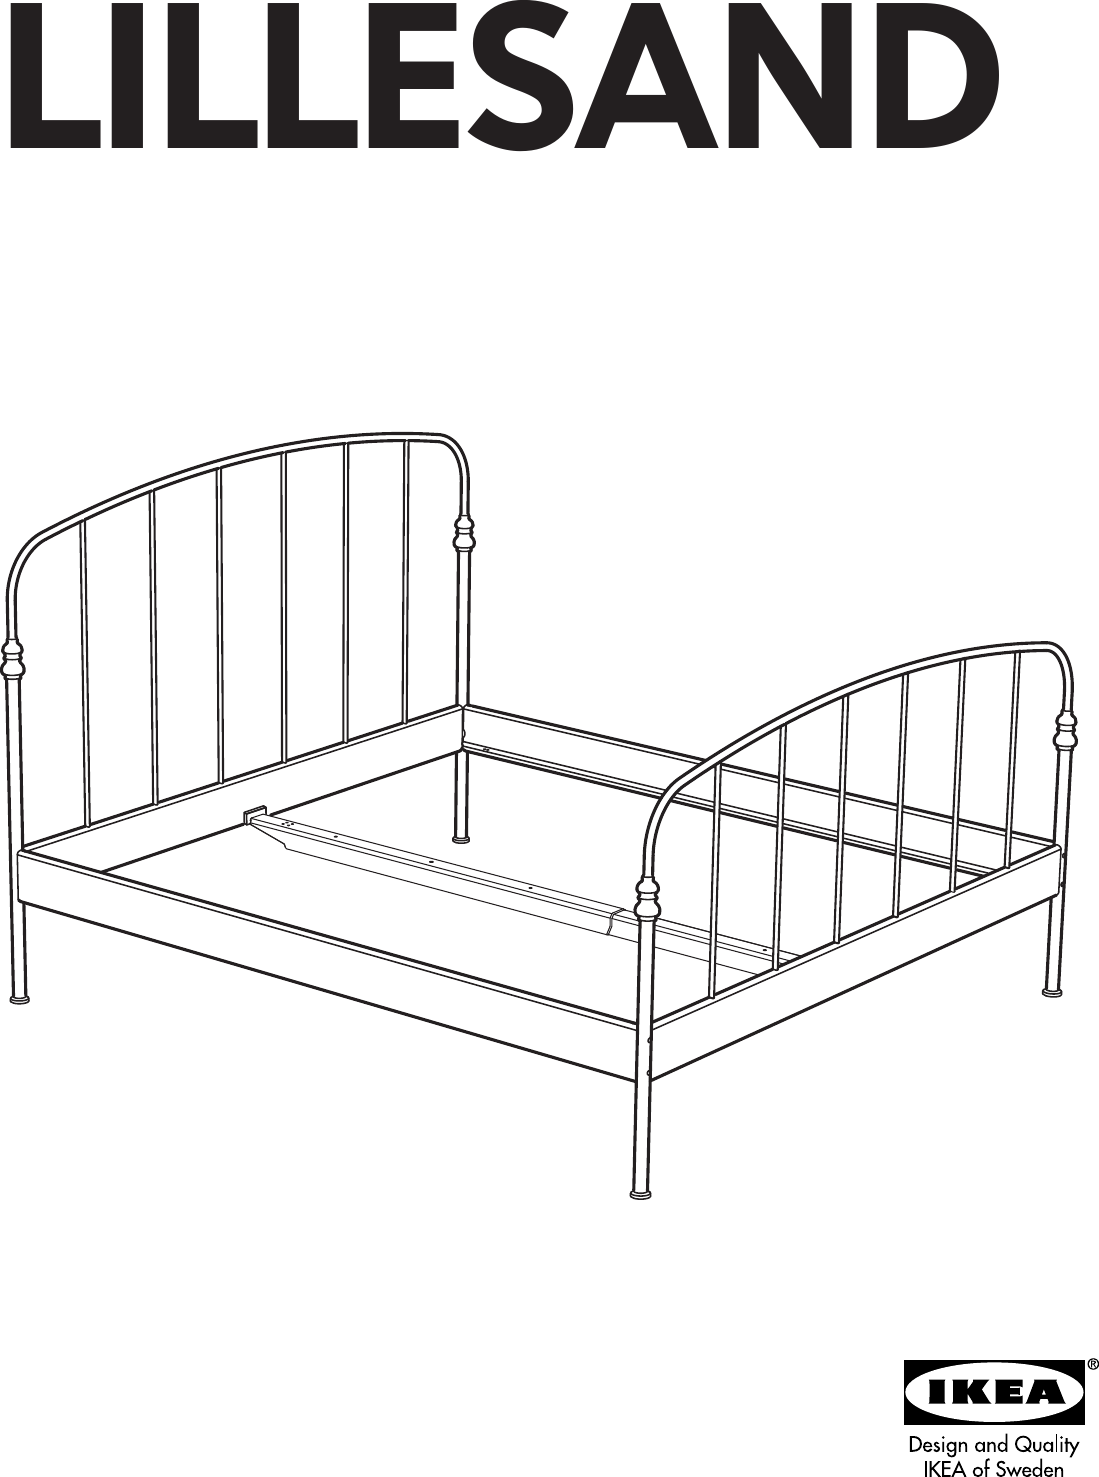 Ikea Lillesand Bed Frame Full Queen King Assembly Instruction